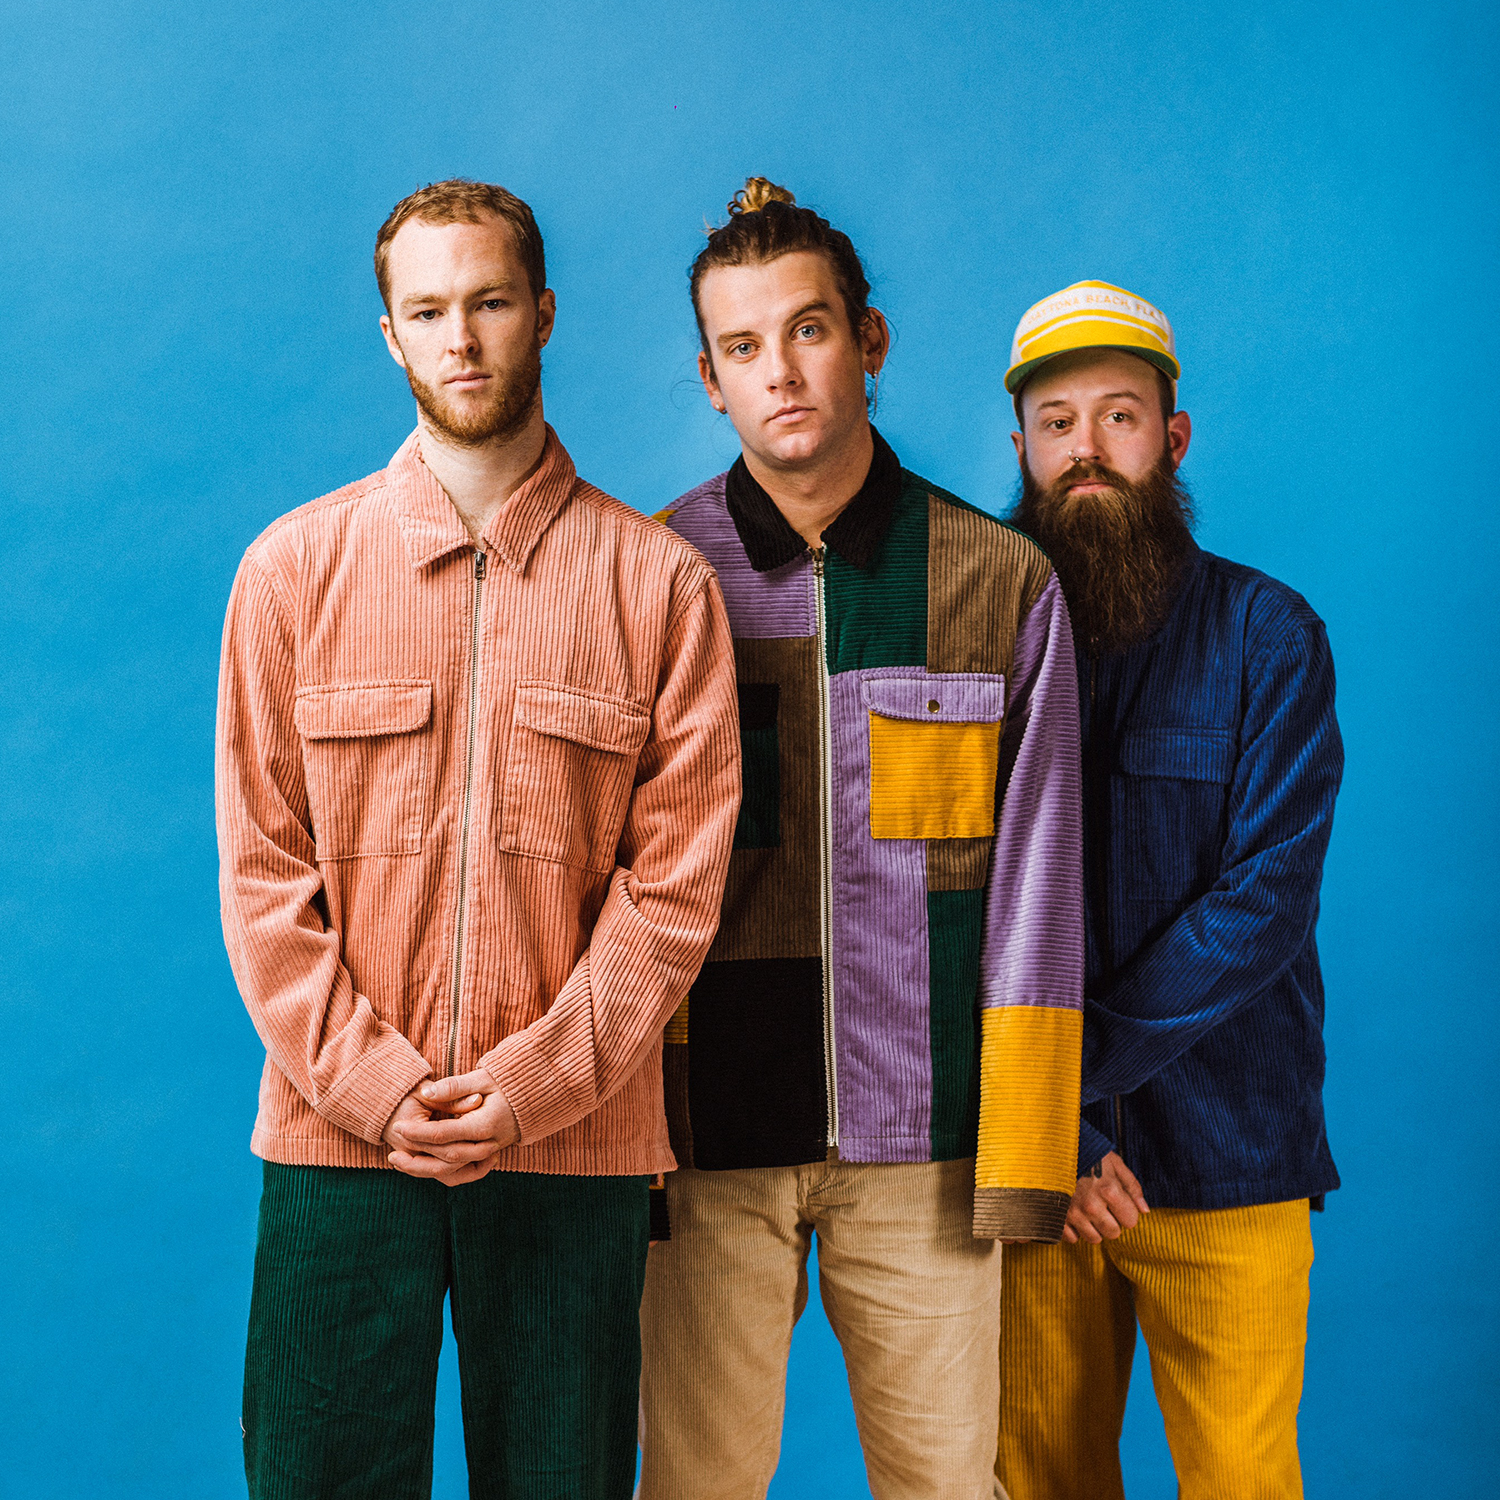 Judah & the Lion Image Credit: Connor and Rachel Dwyer